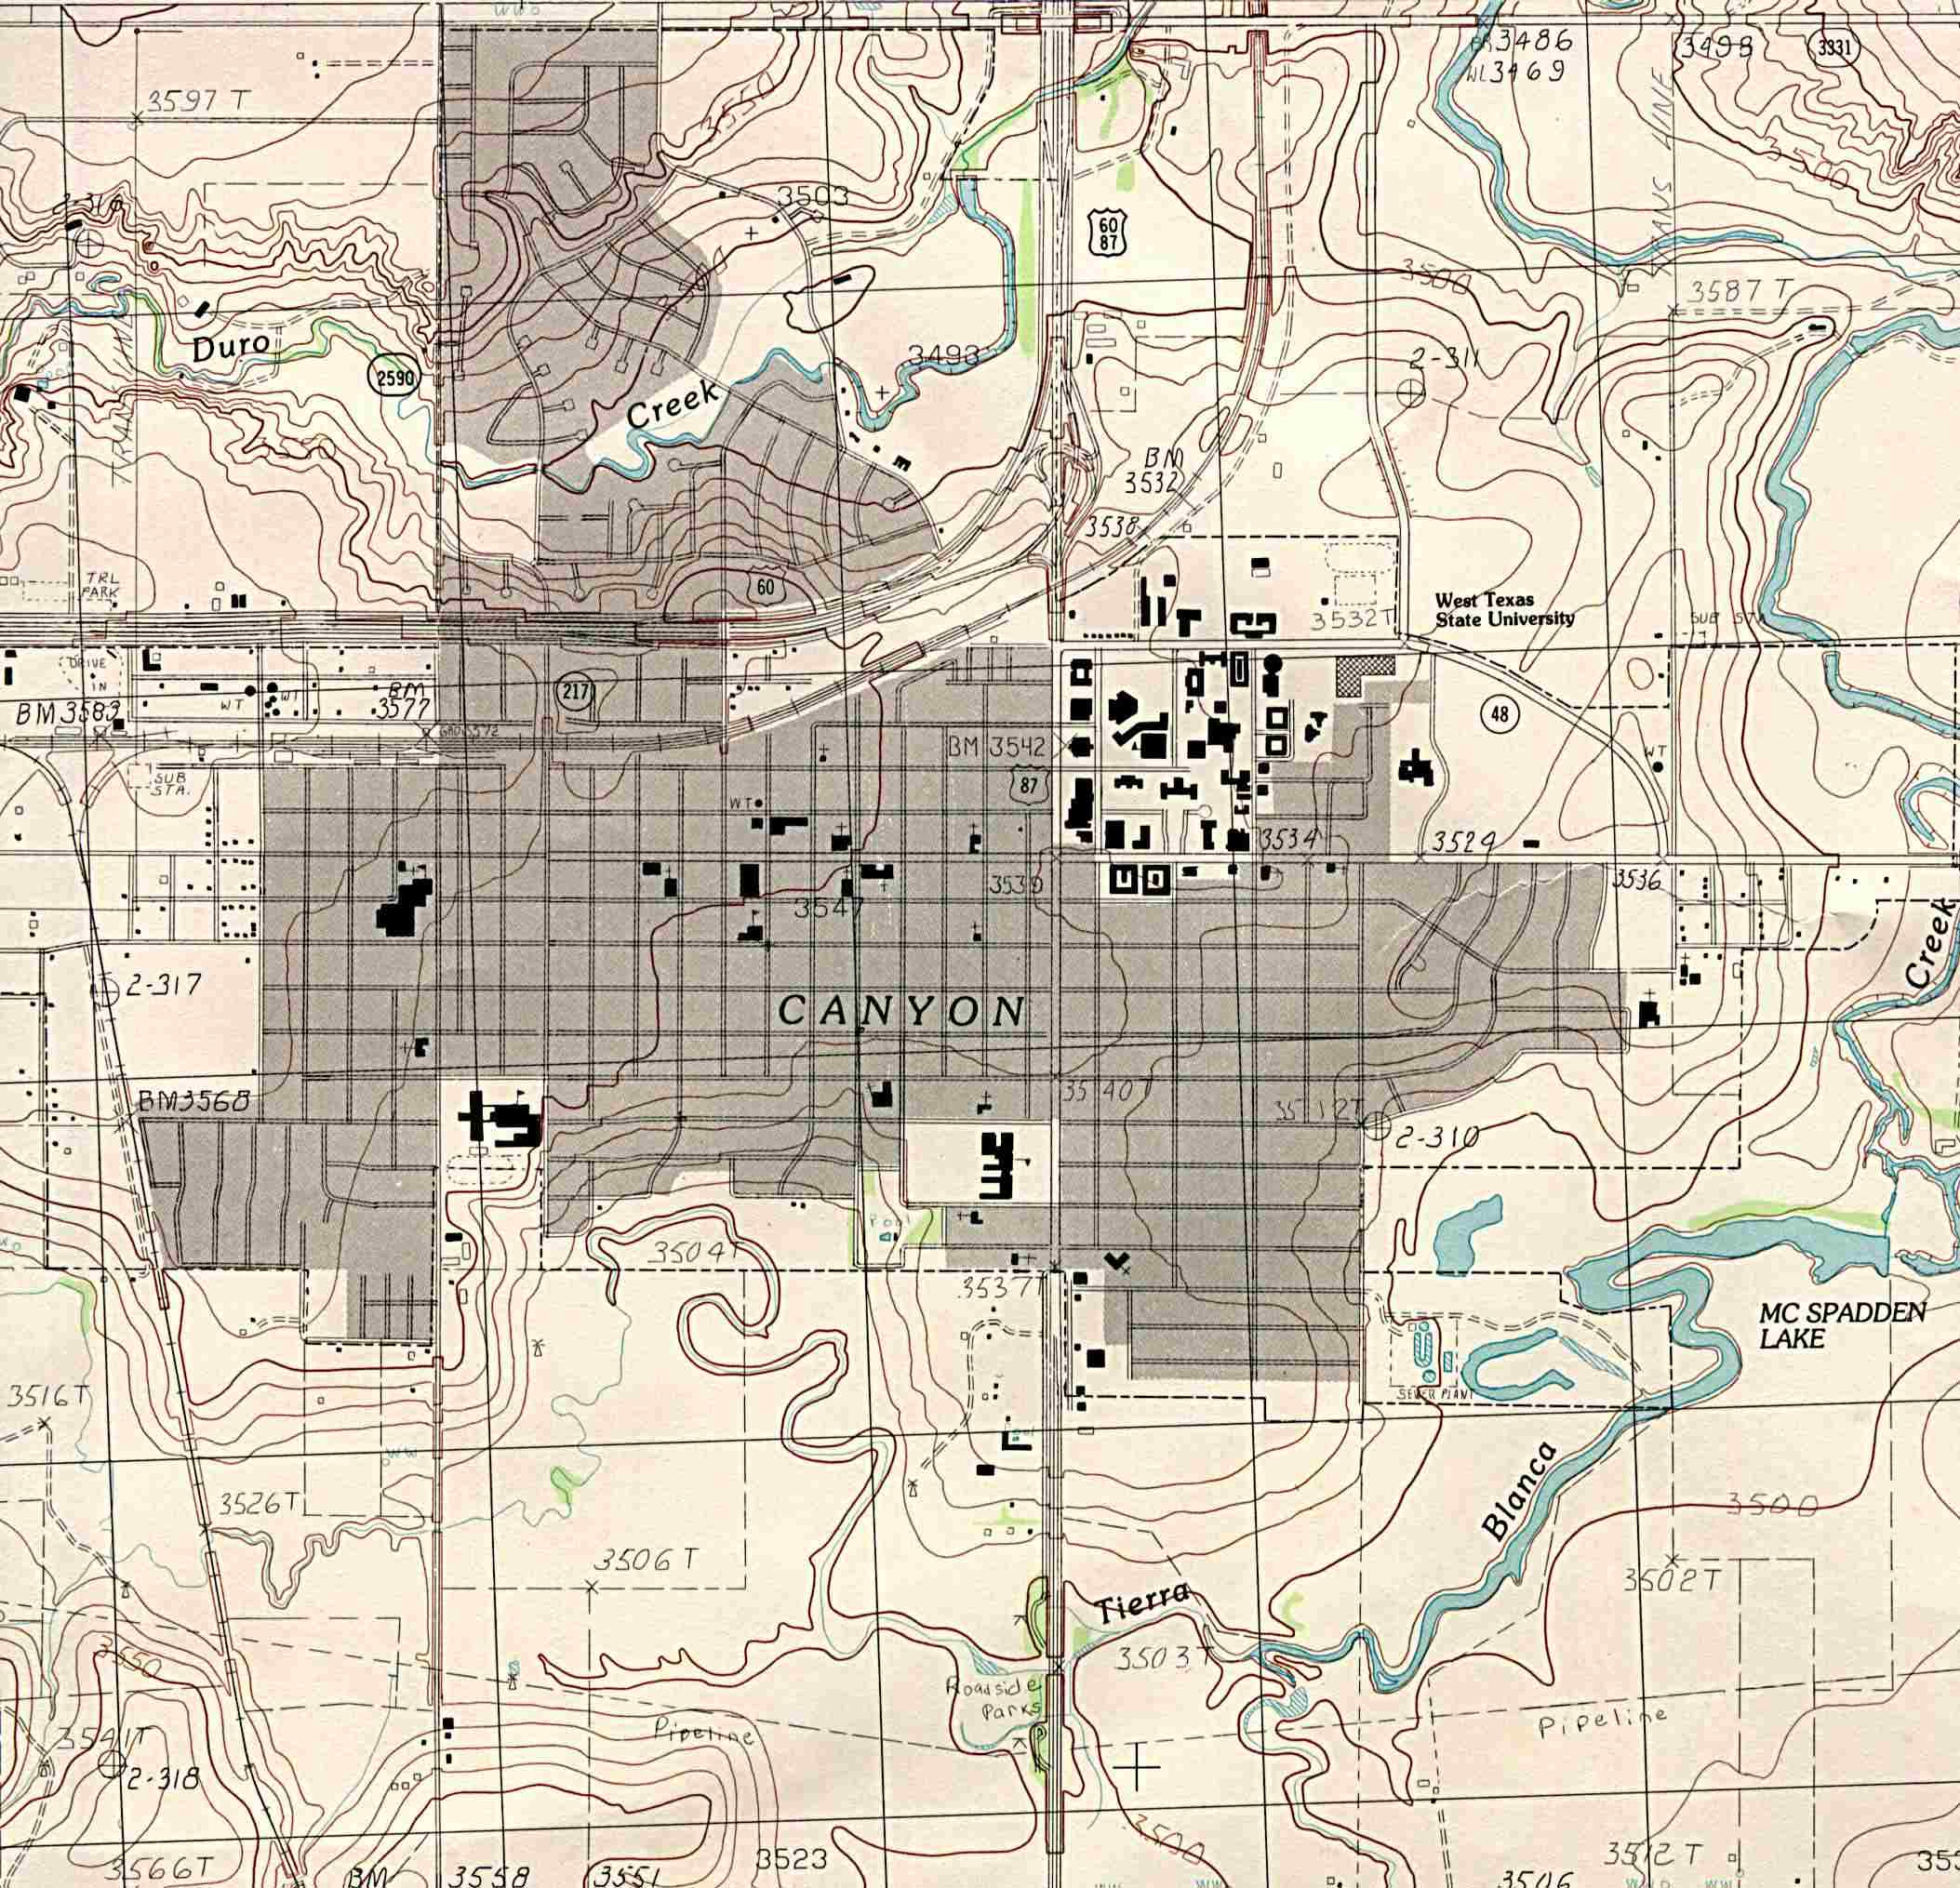 Texas City Maps - Perry-Castañeda Map Collection - Ut Library Online - Google Maps Waco Texas